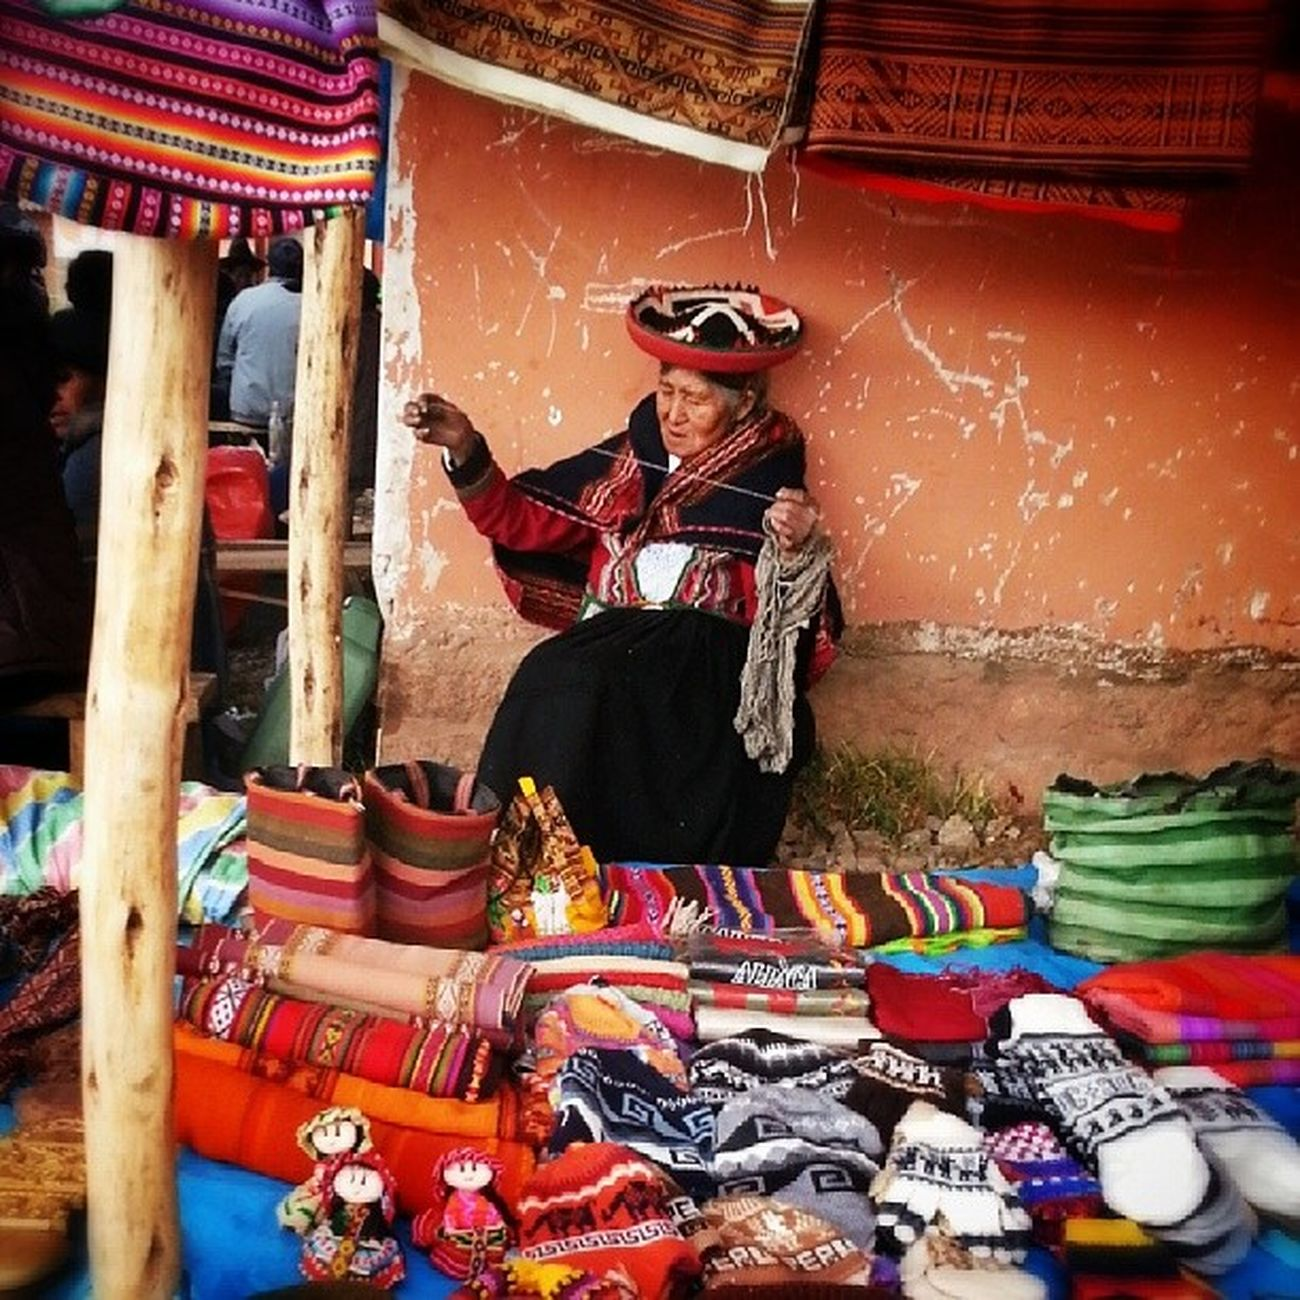 Sunday is Market day in Chinchero